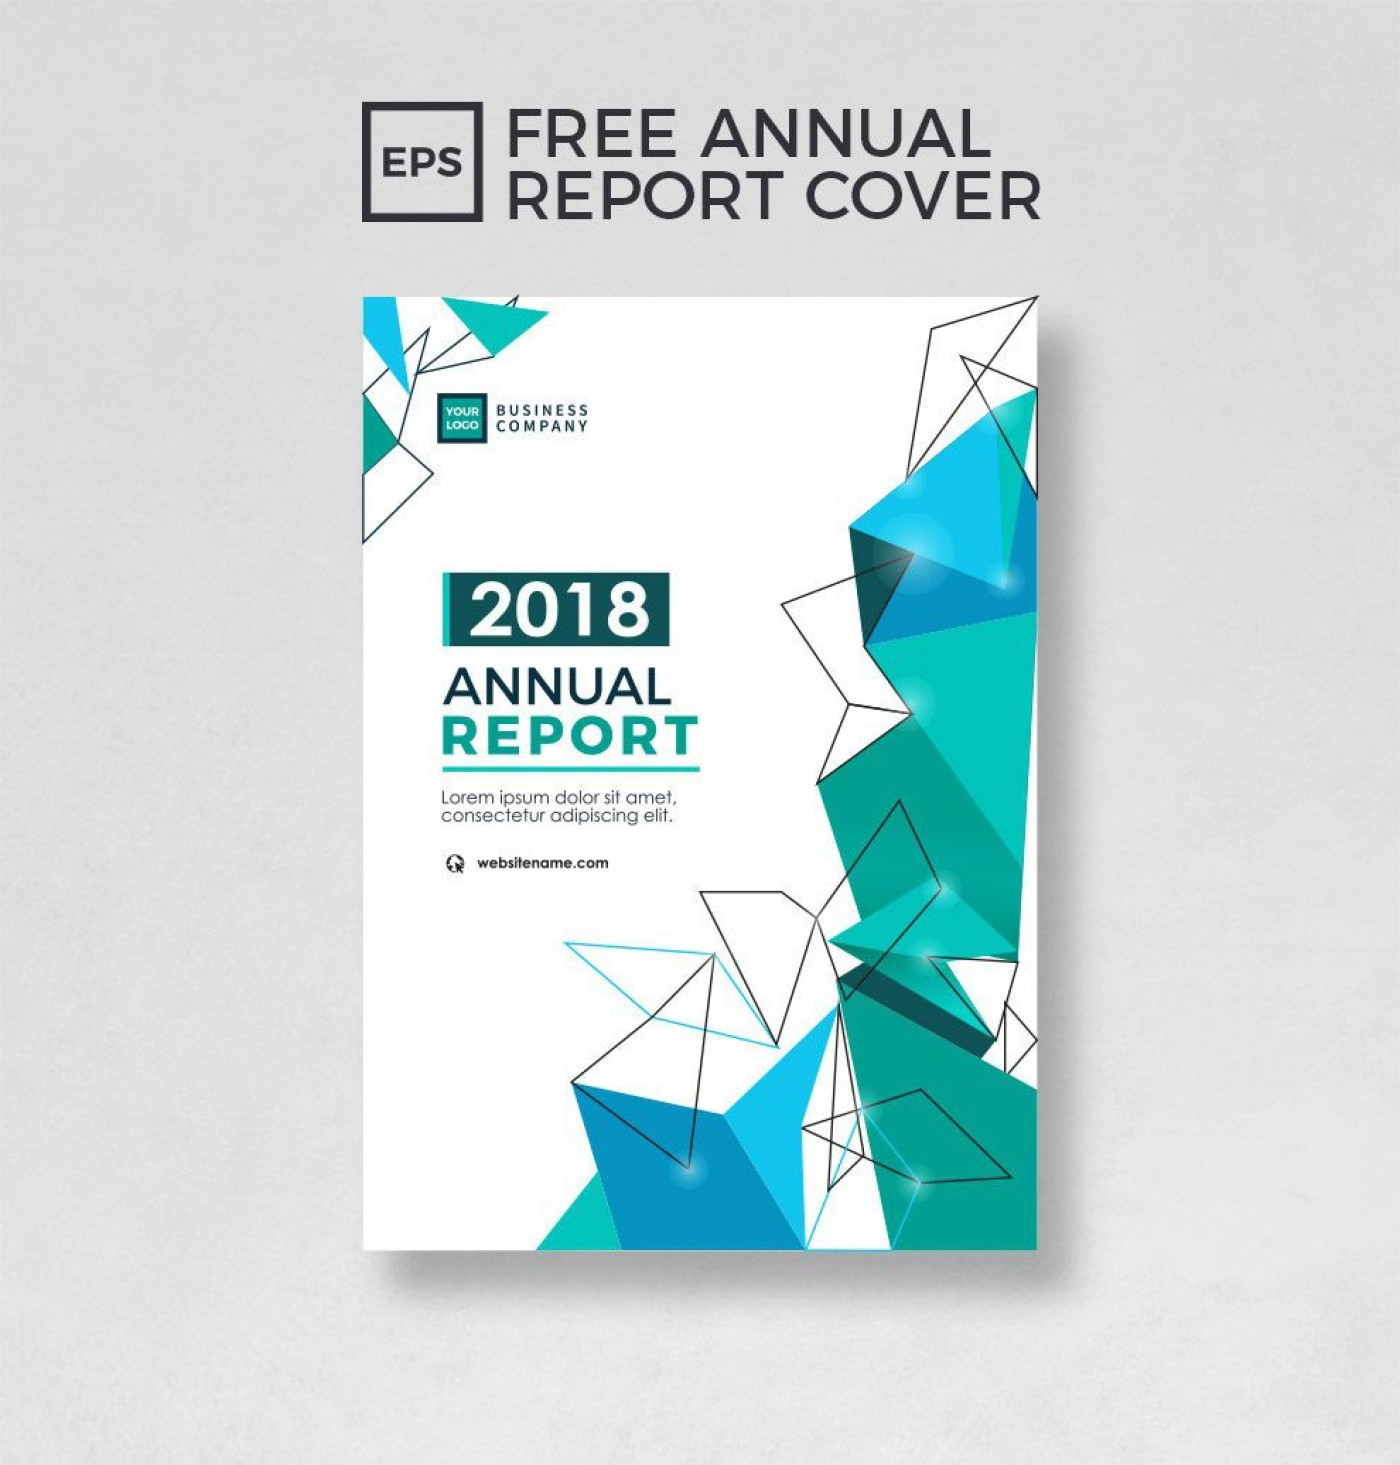 000 Exceptional Free Download Annual Report Cover Design Template High Definition  In Word Page1400